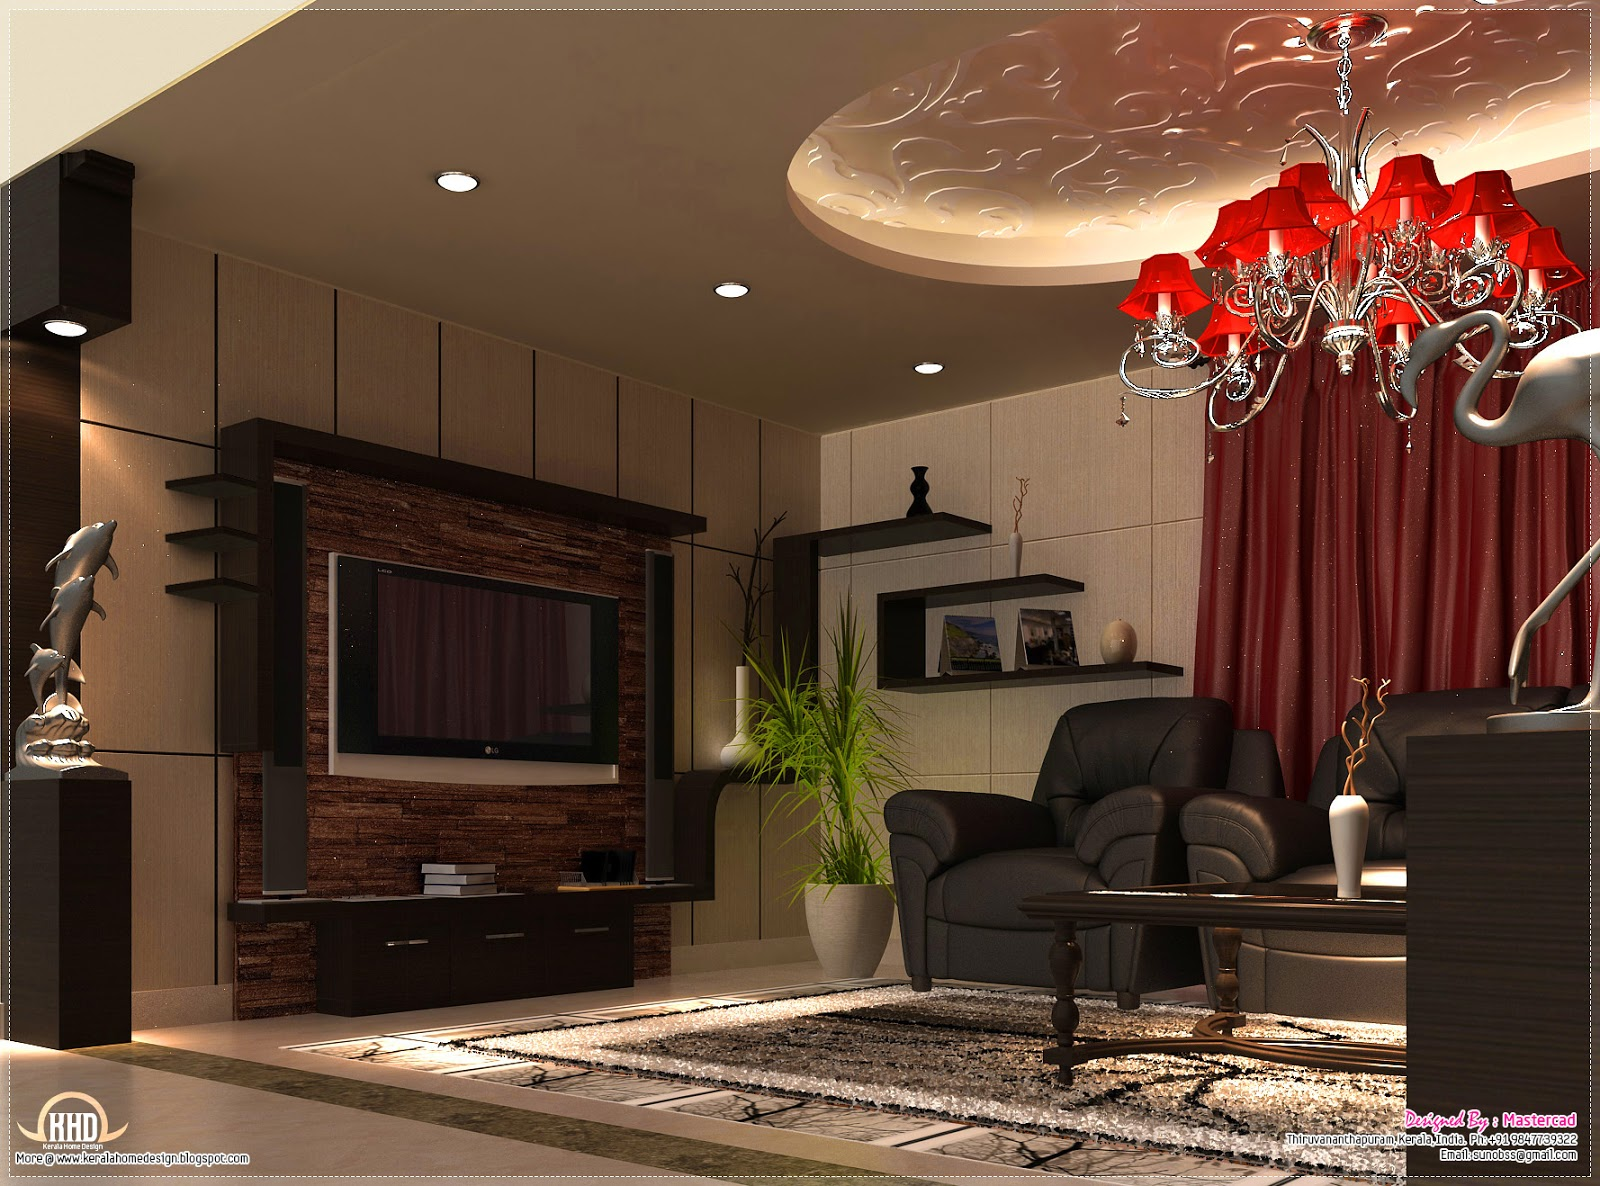 Interior design ideas kerala home design and floor plans for Home decoration design